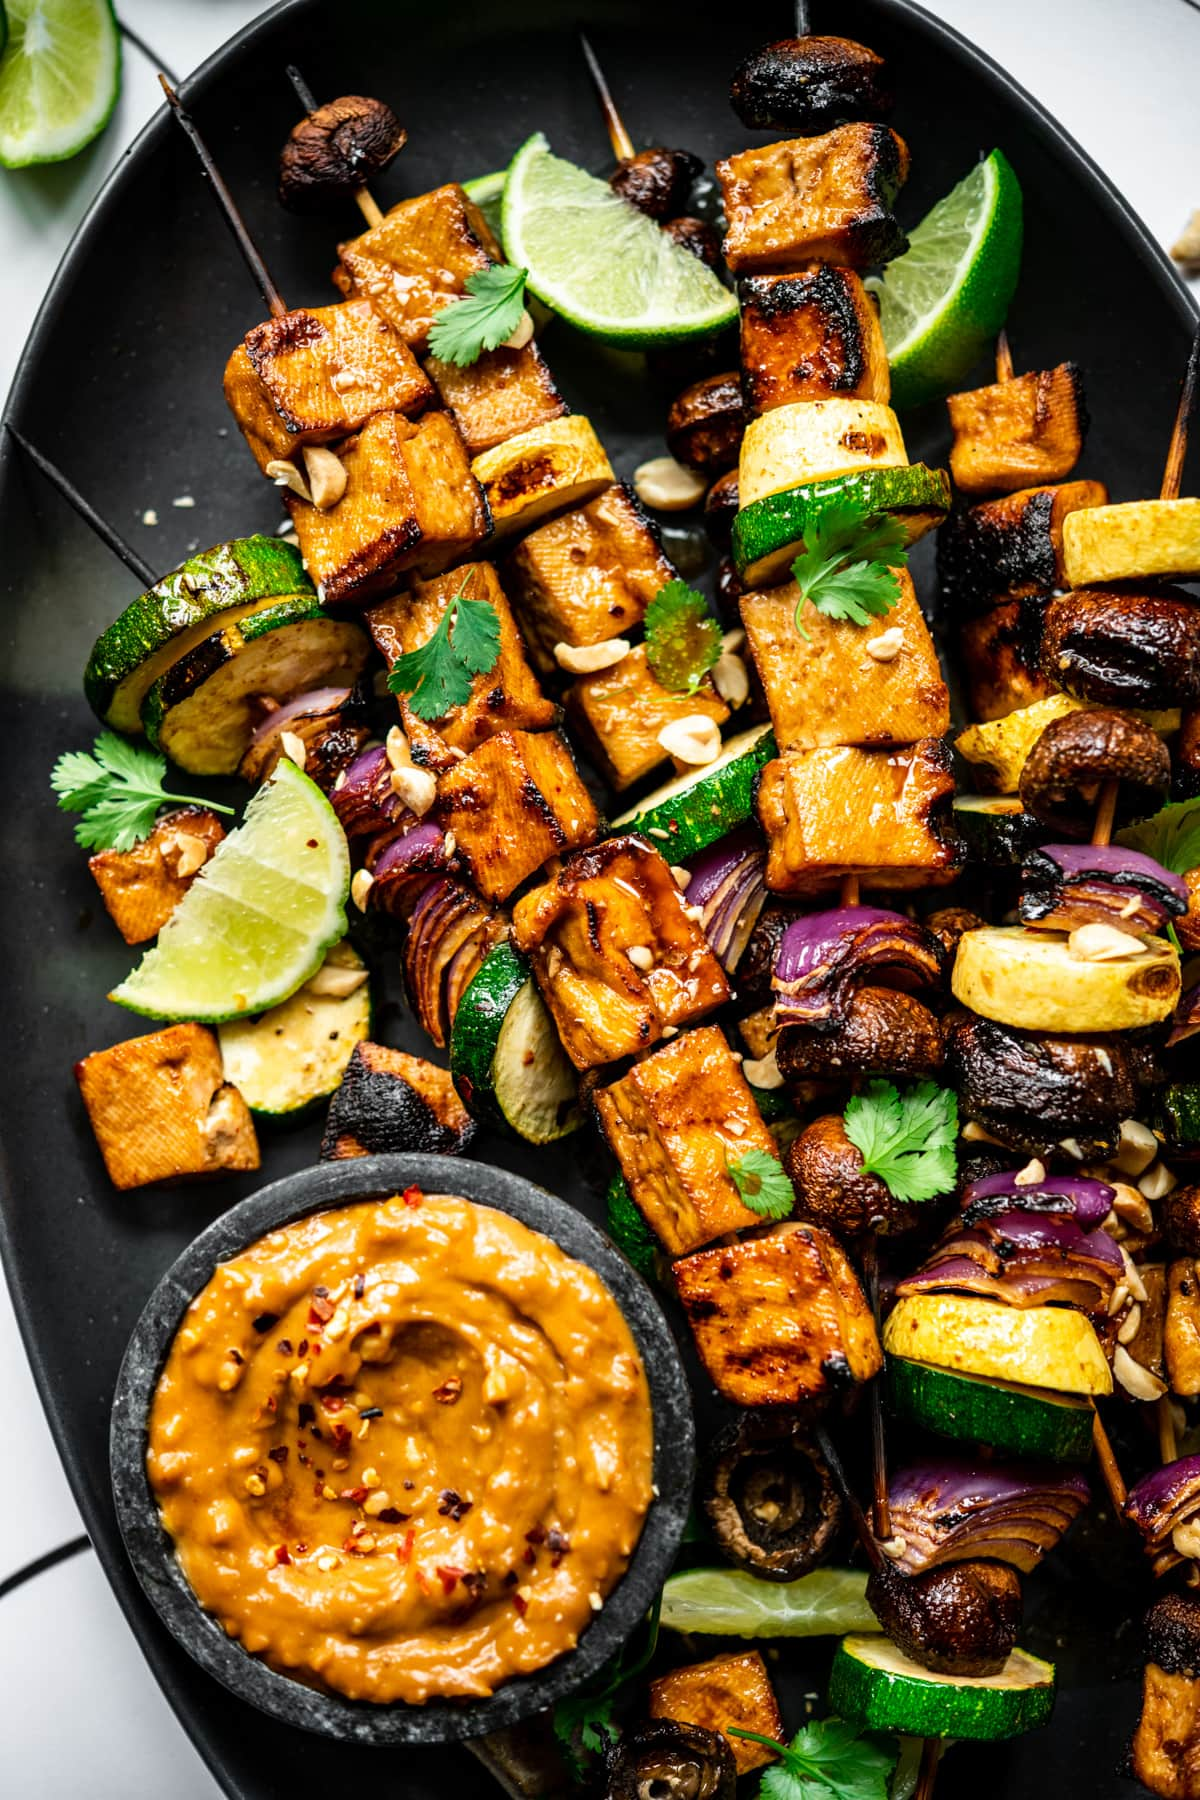 close up view of grilled tofu kebabs with vegetables on a platter with a bowl of peanut sauce.